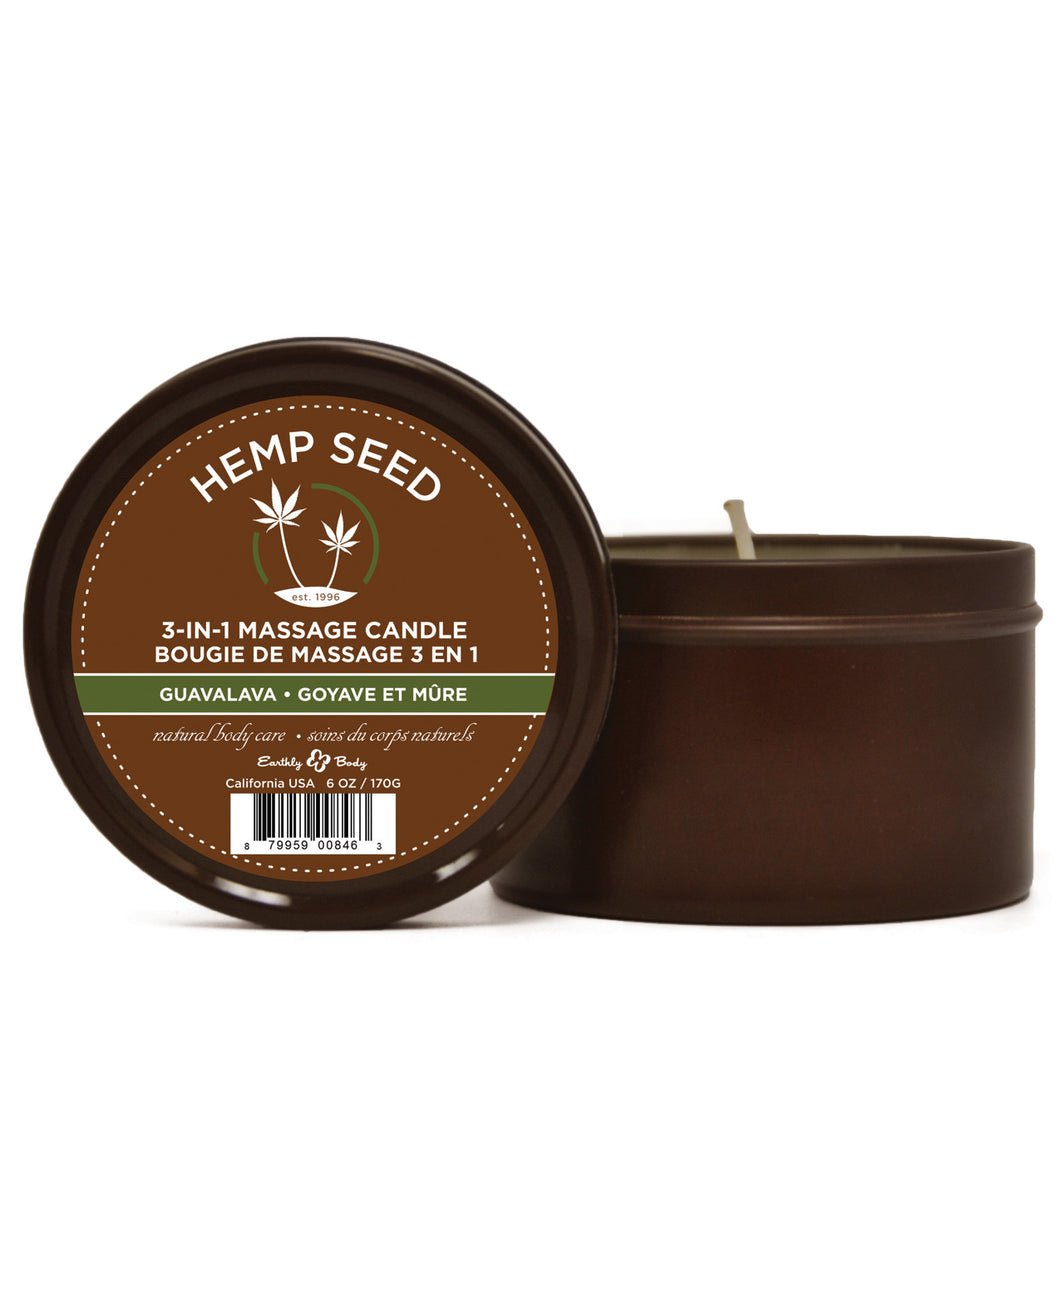 Earthly Body Suntouched Hemp Candle - 6 oz Round Tin Guavalava